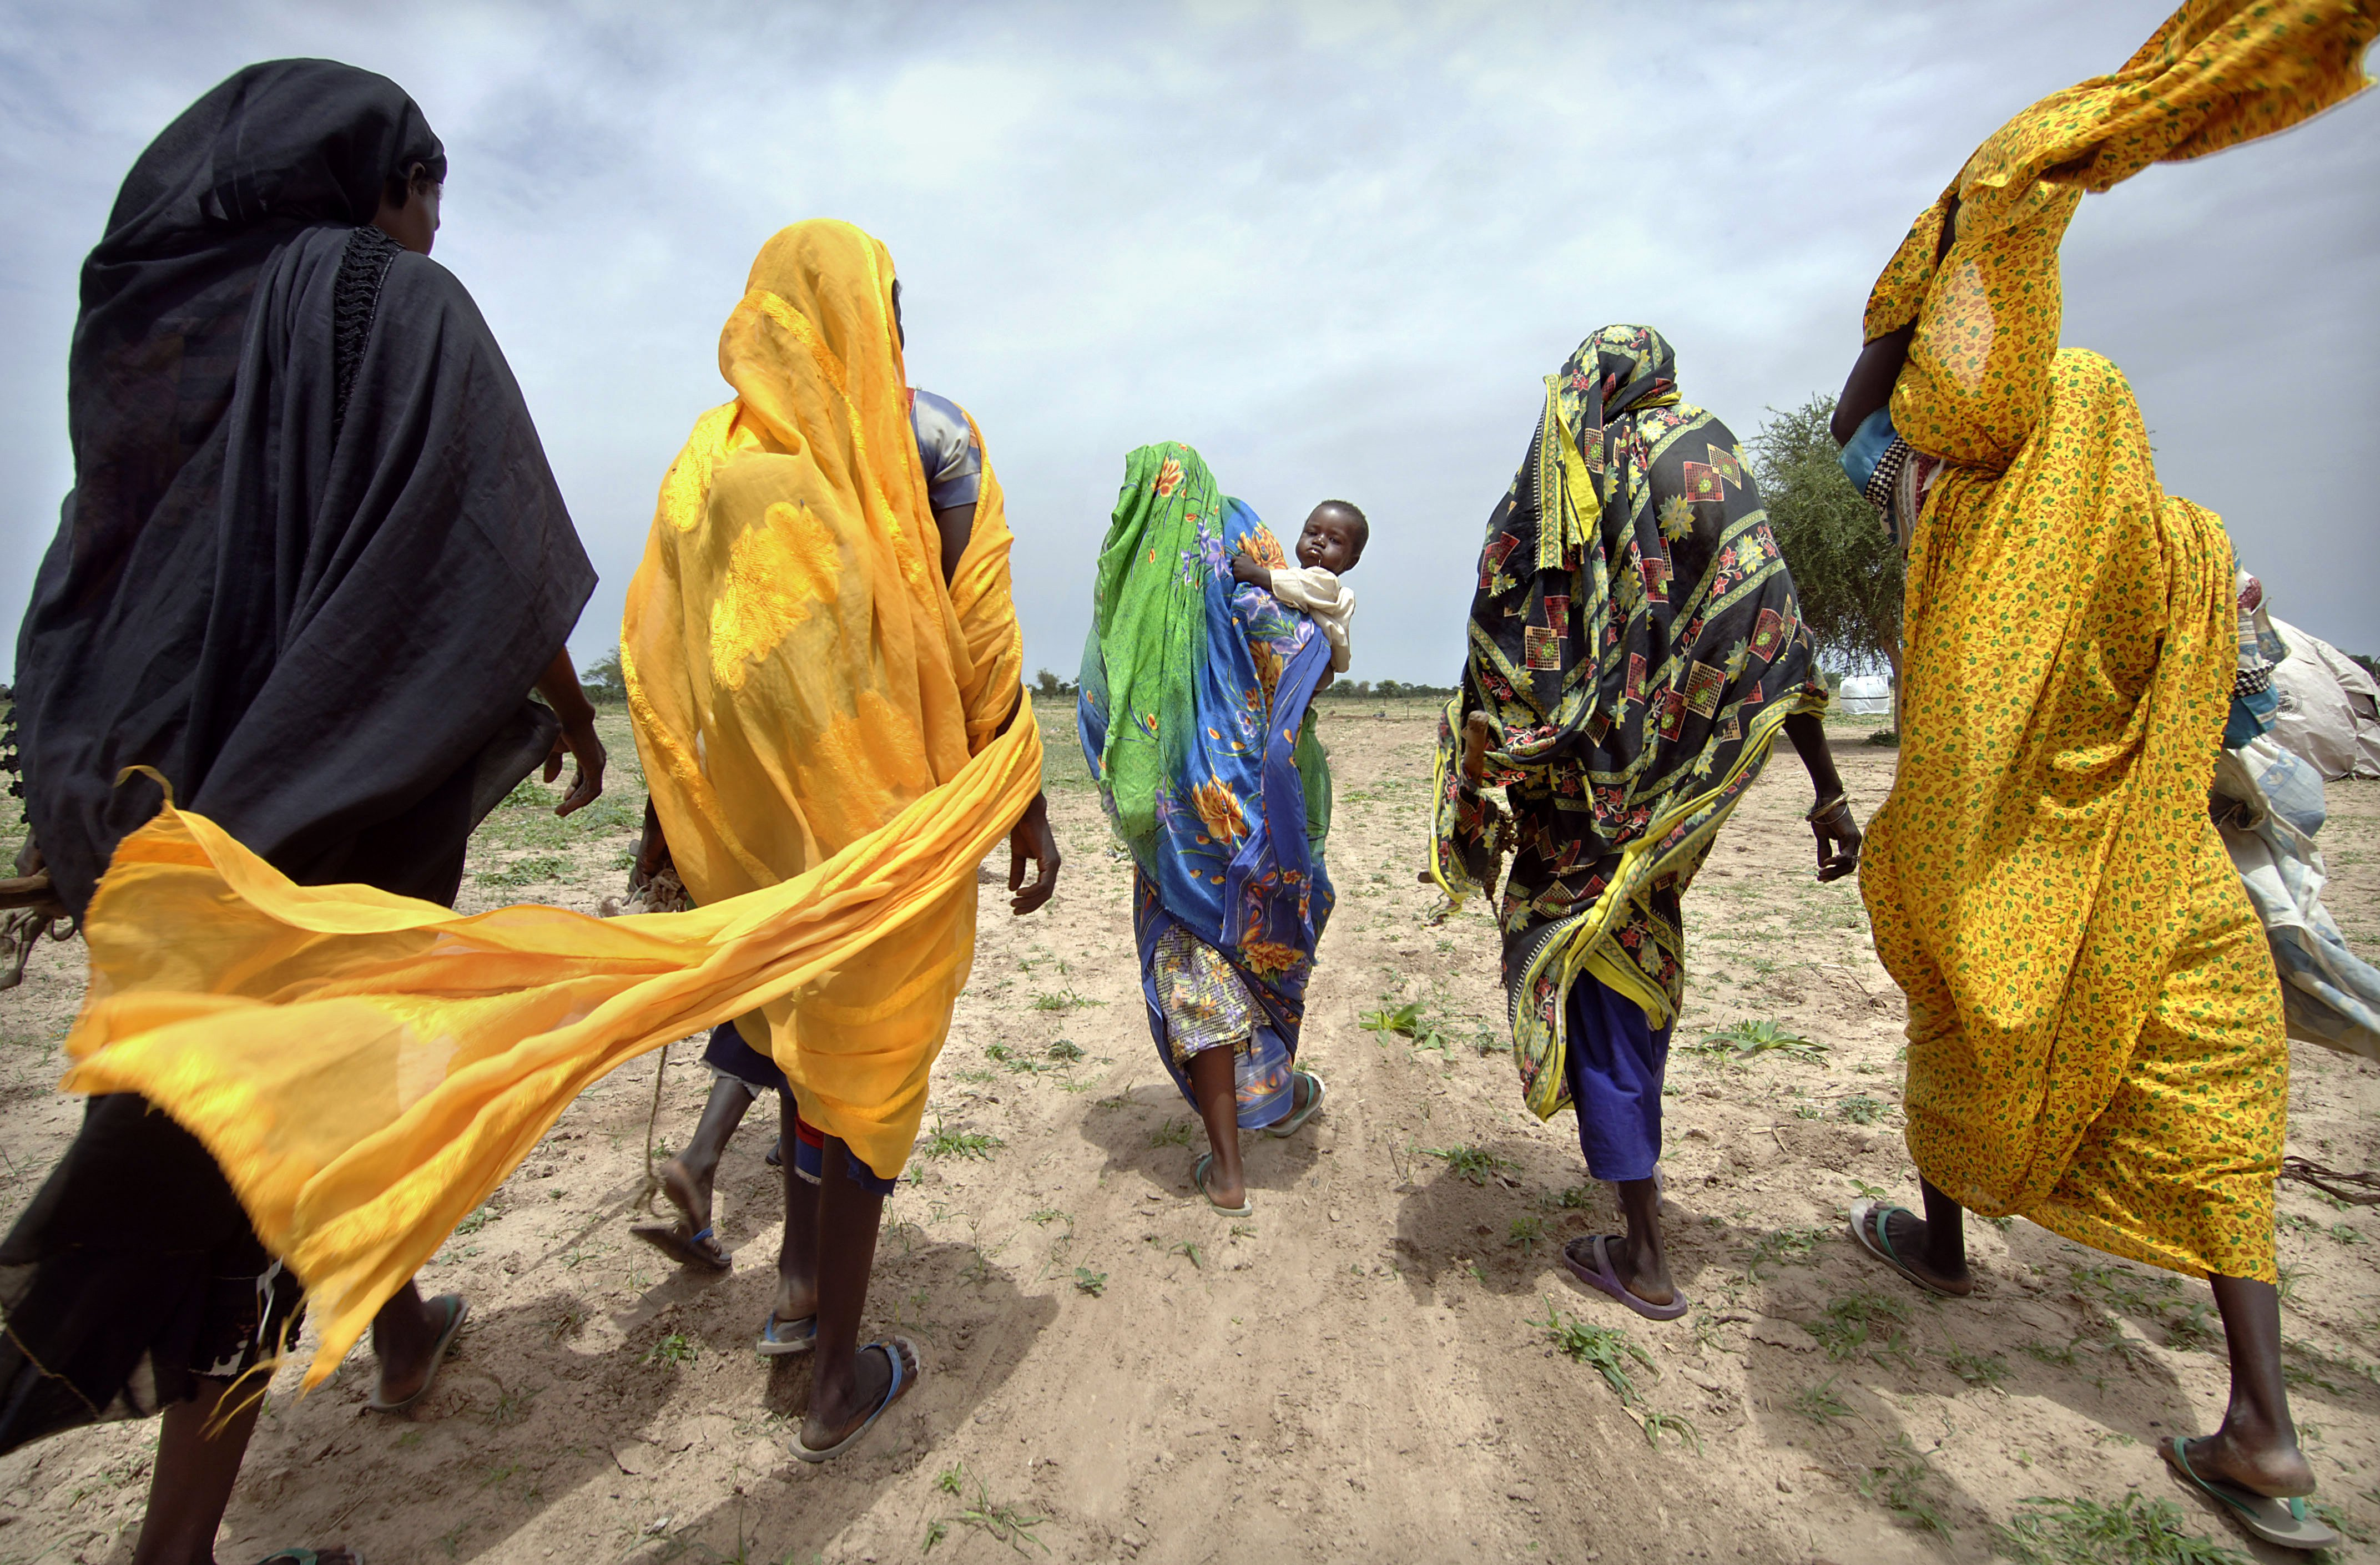 Women leaving a camp for internally displaced persons to collect firewood, Gereida, South Darfur, Sudan